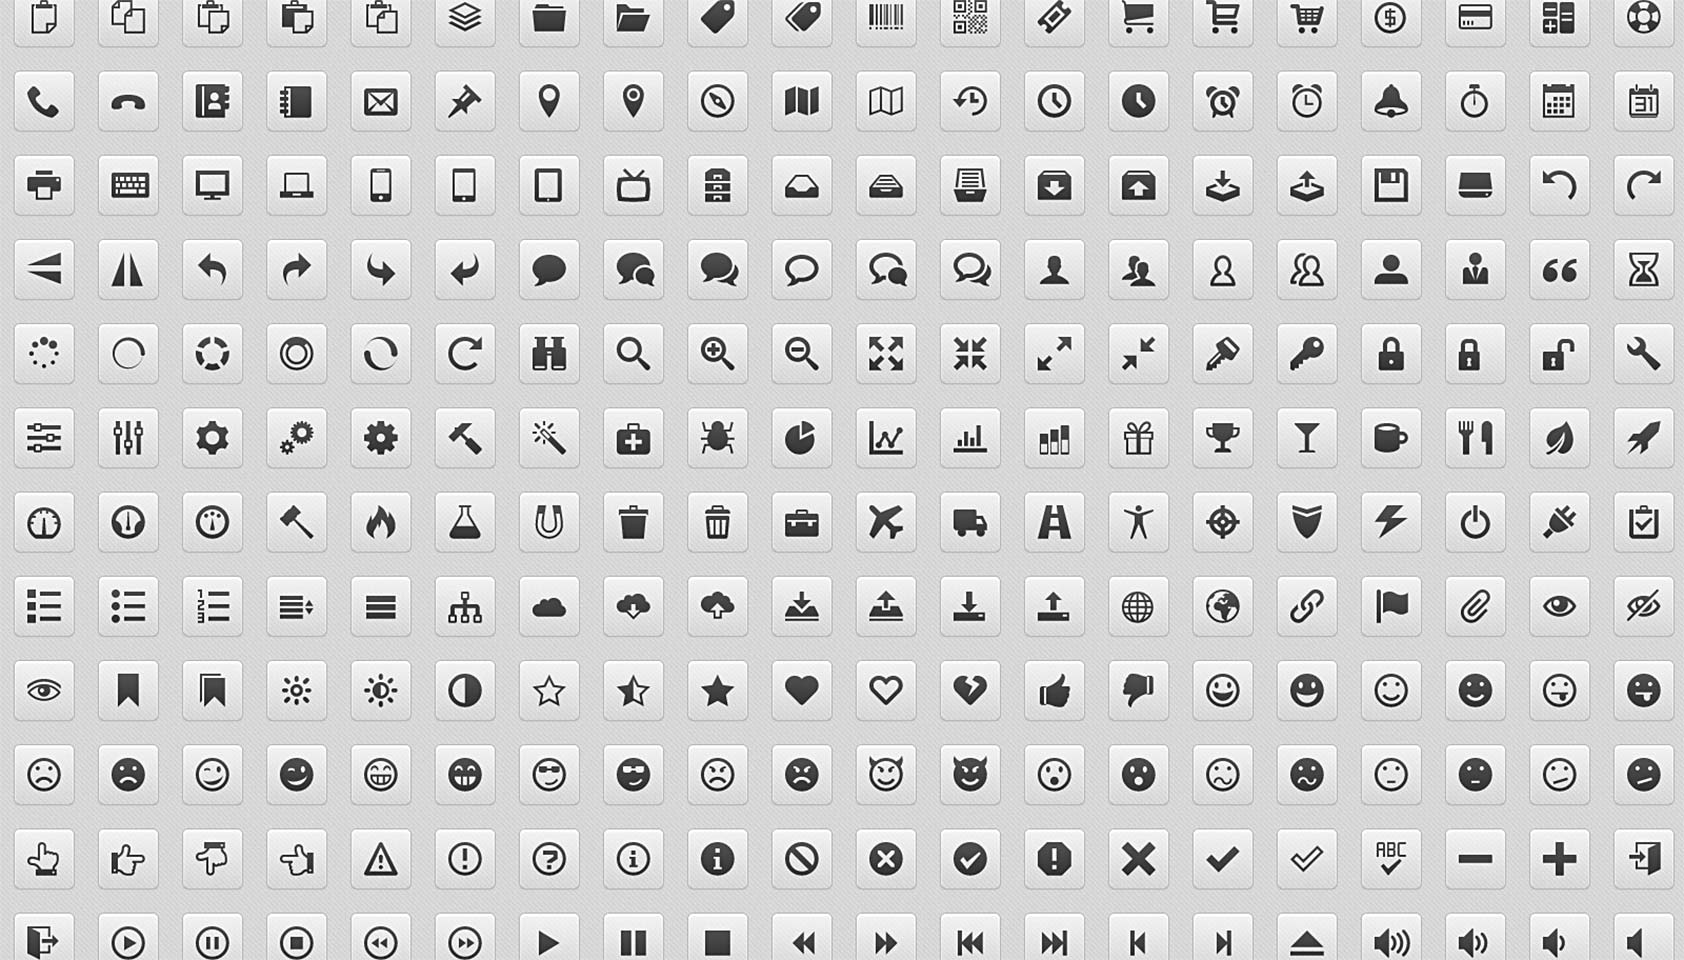 How to turn your icons into a web font